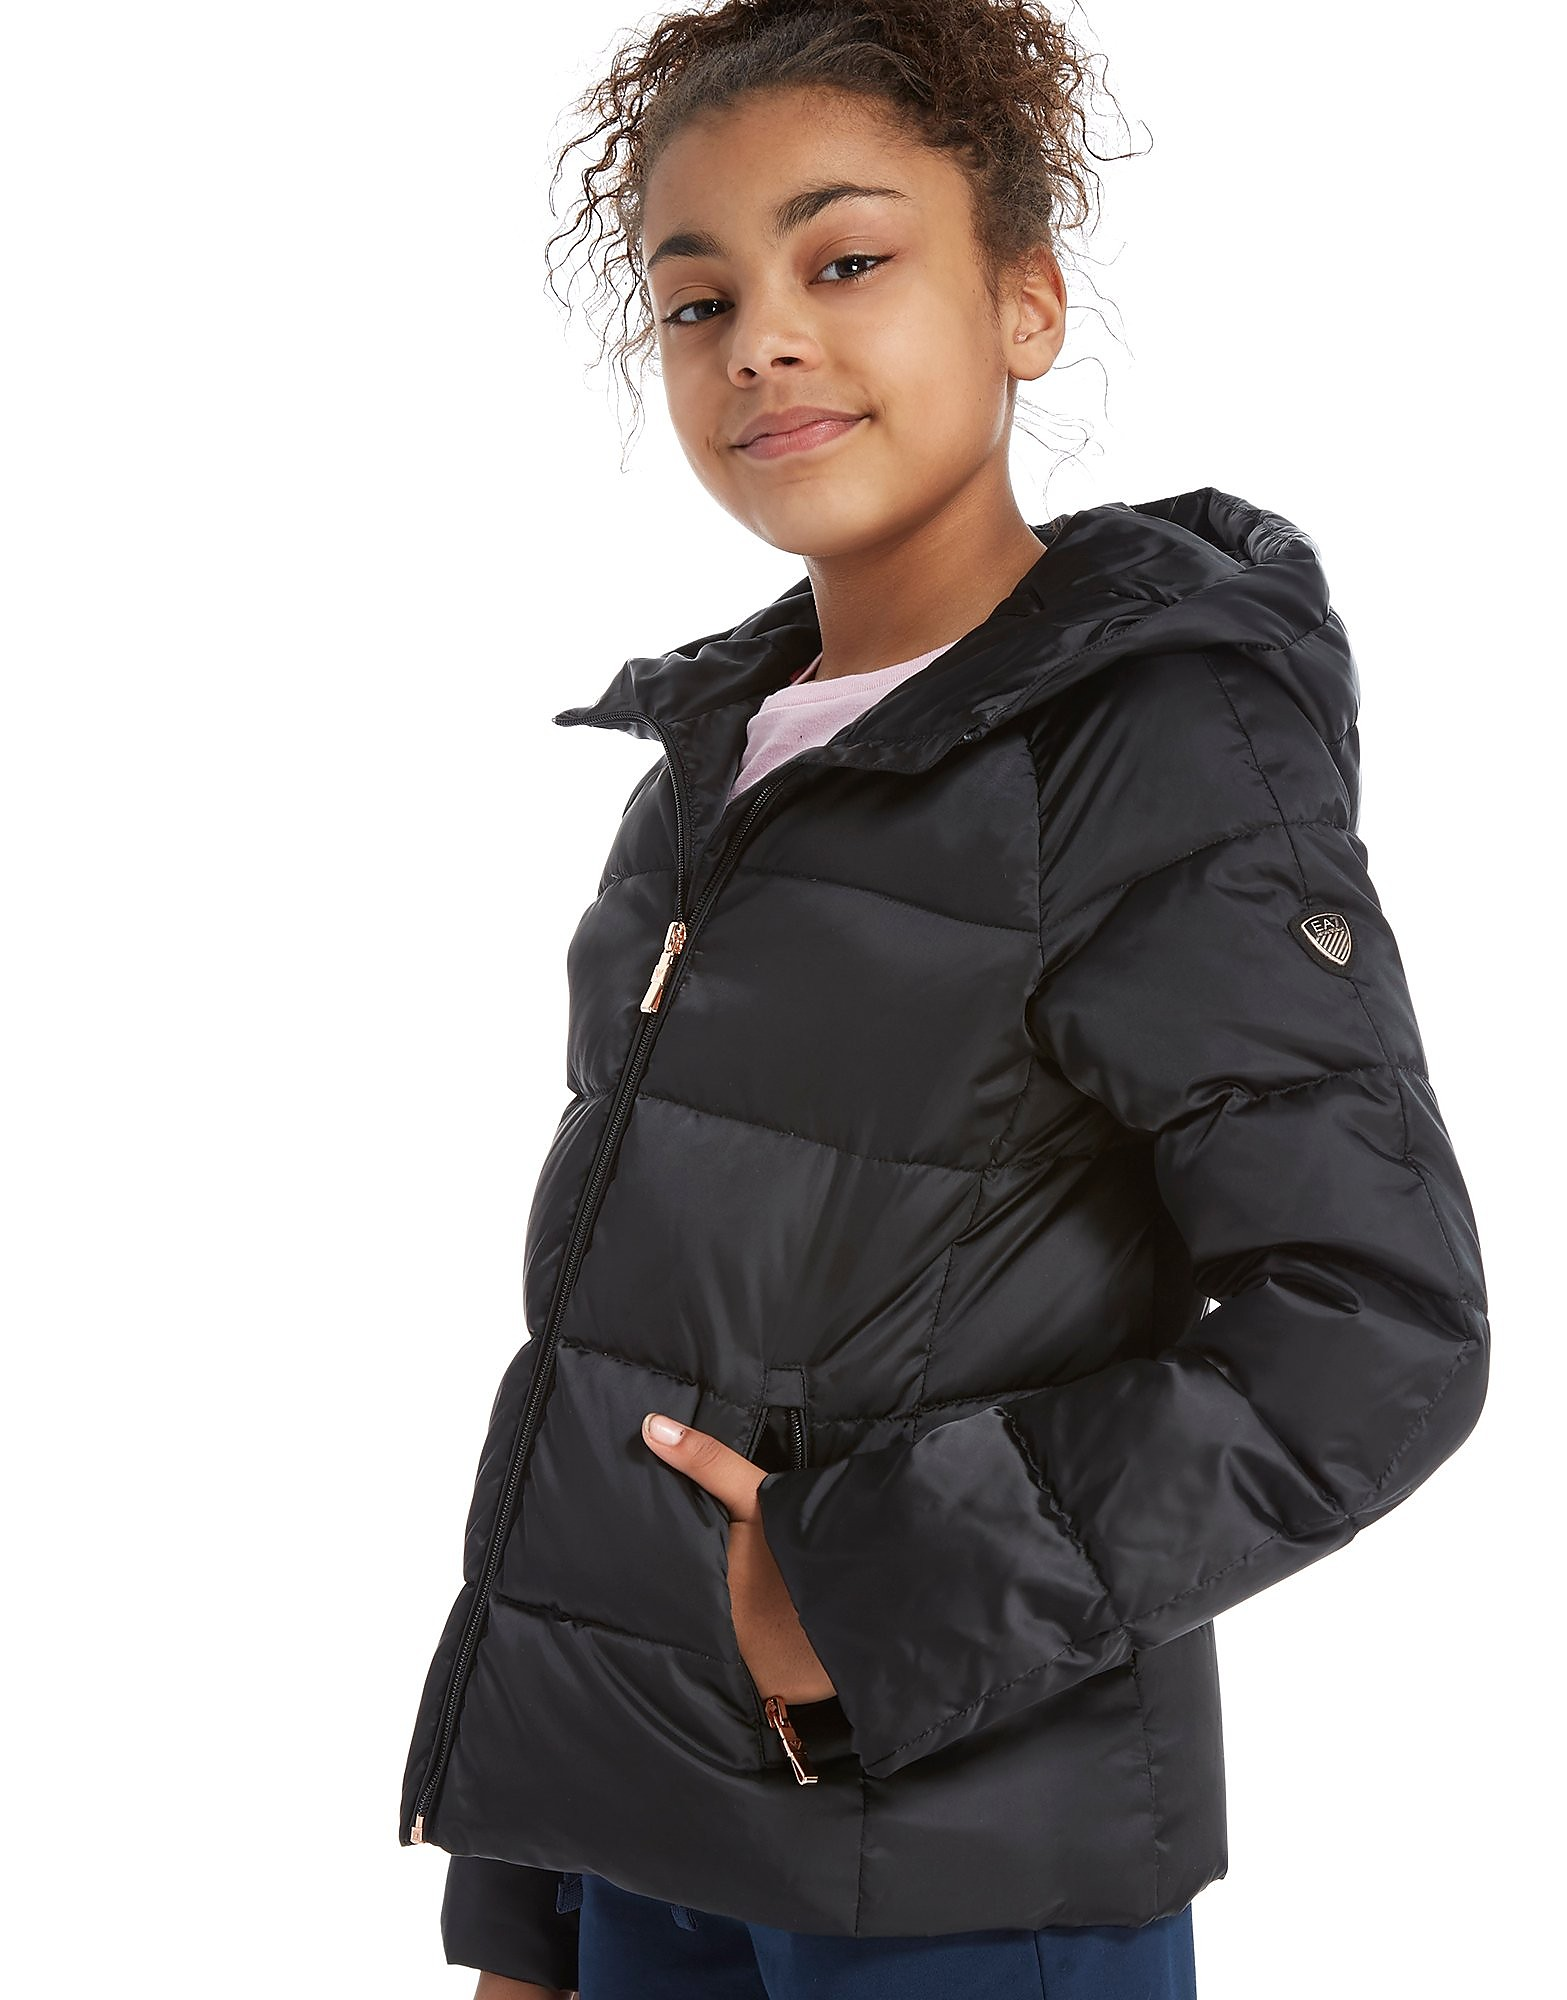 Emporio Armani EA7 Girls' Shiny Down Jacket Junior